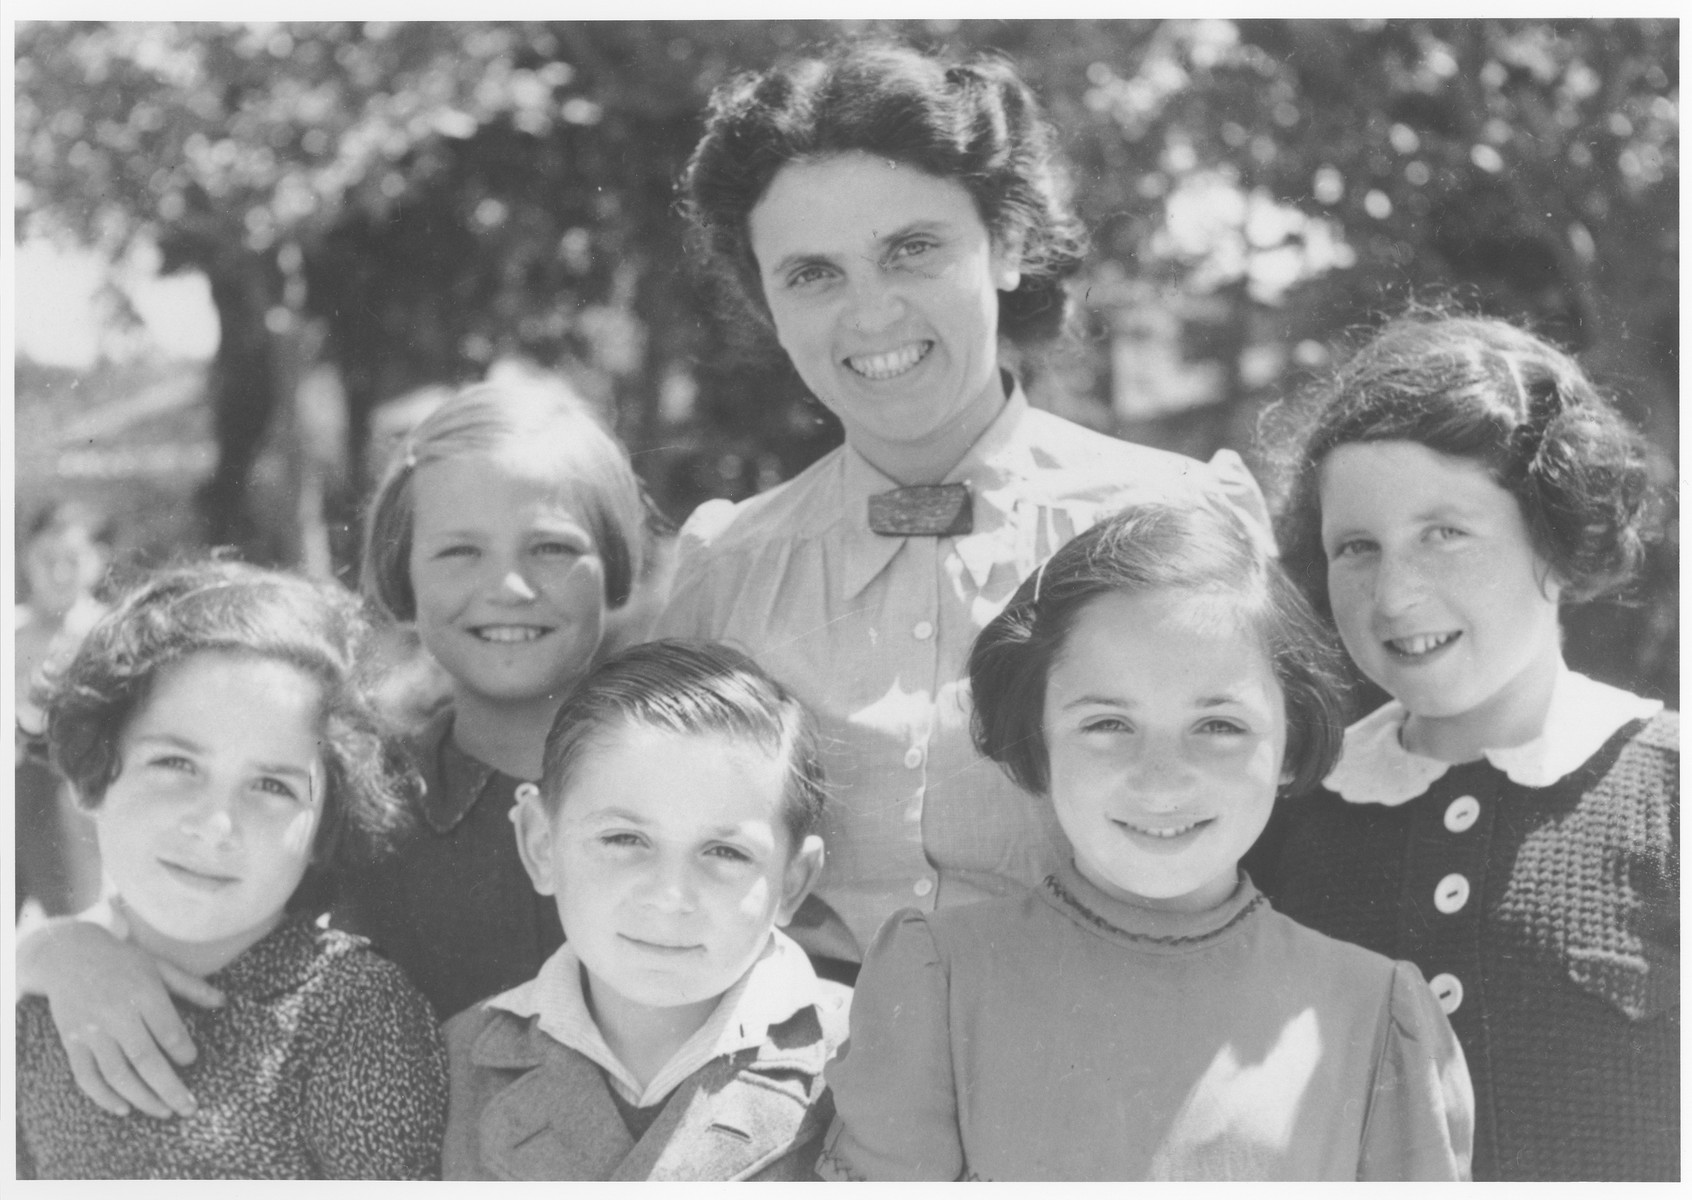 OSE relief worker, Andree Salomon, poses with a group of Jewish refugee children before their departure on a children's transport to the United States.  Pictured on the far right is Else Koller (now Fleischmann).